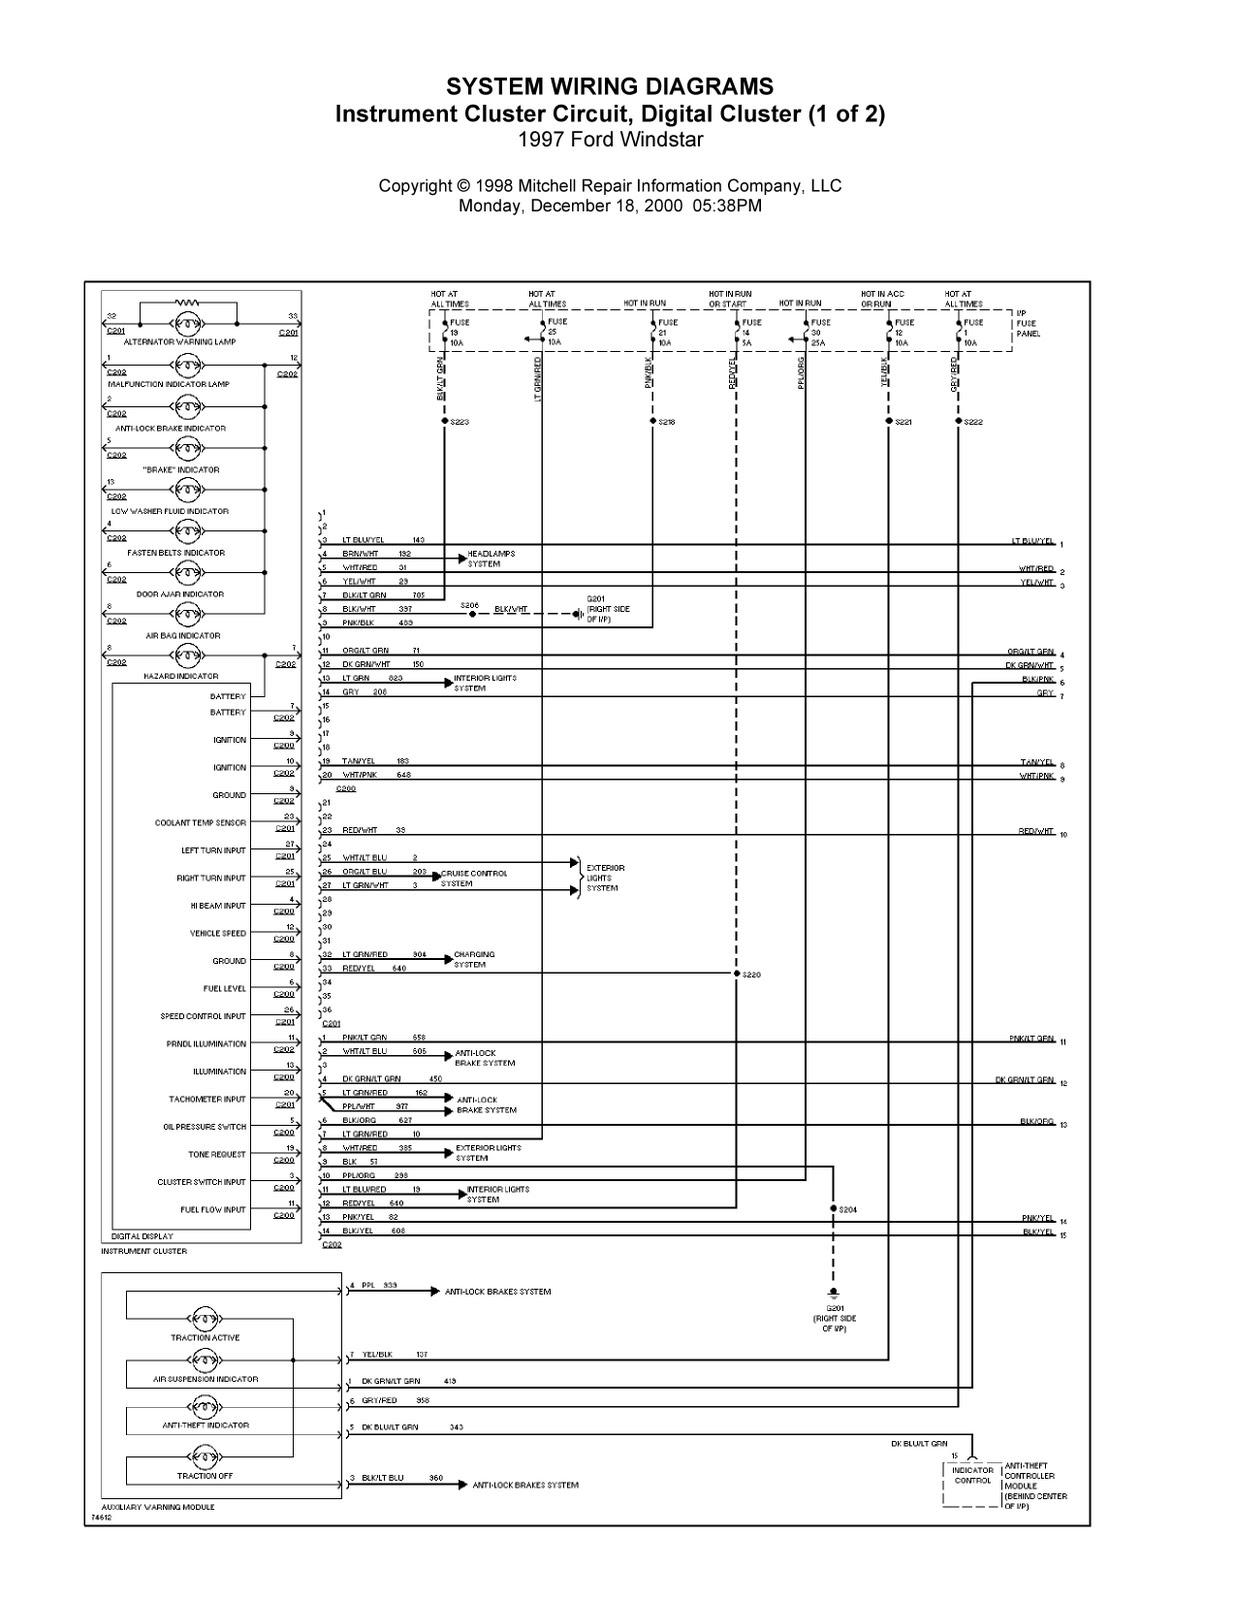 1997 ford windstar complete system wiring diagrams 2001 ford windstar electrical diagram 2002 ford windstar electrical [ 1236 x 1600 Pixel ]